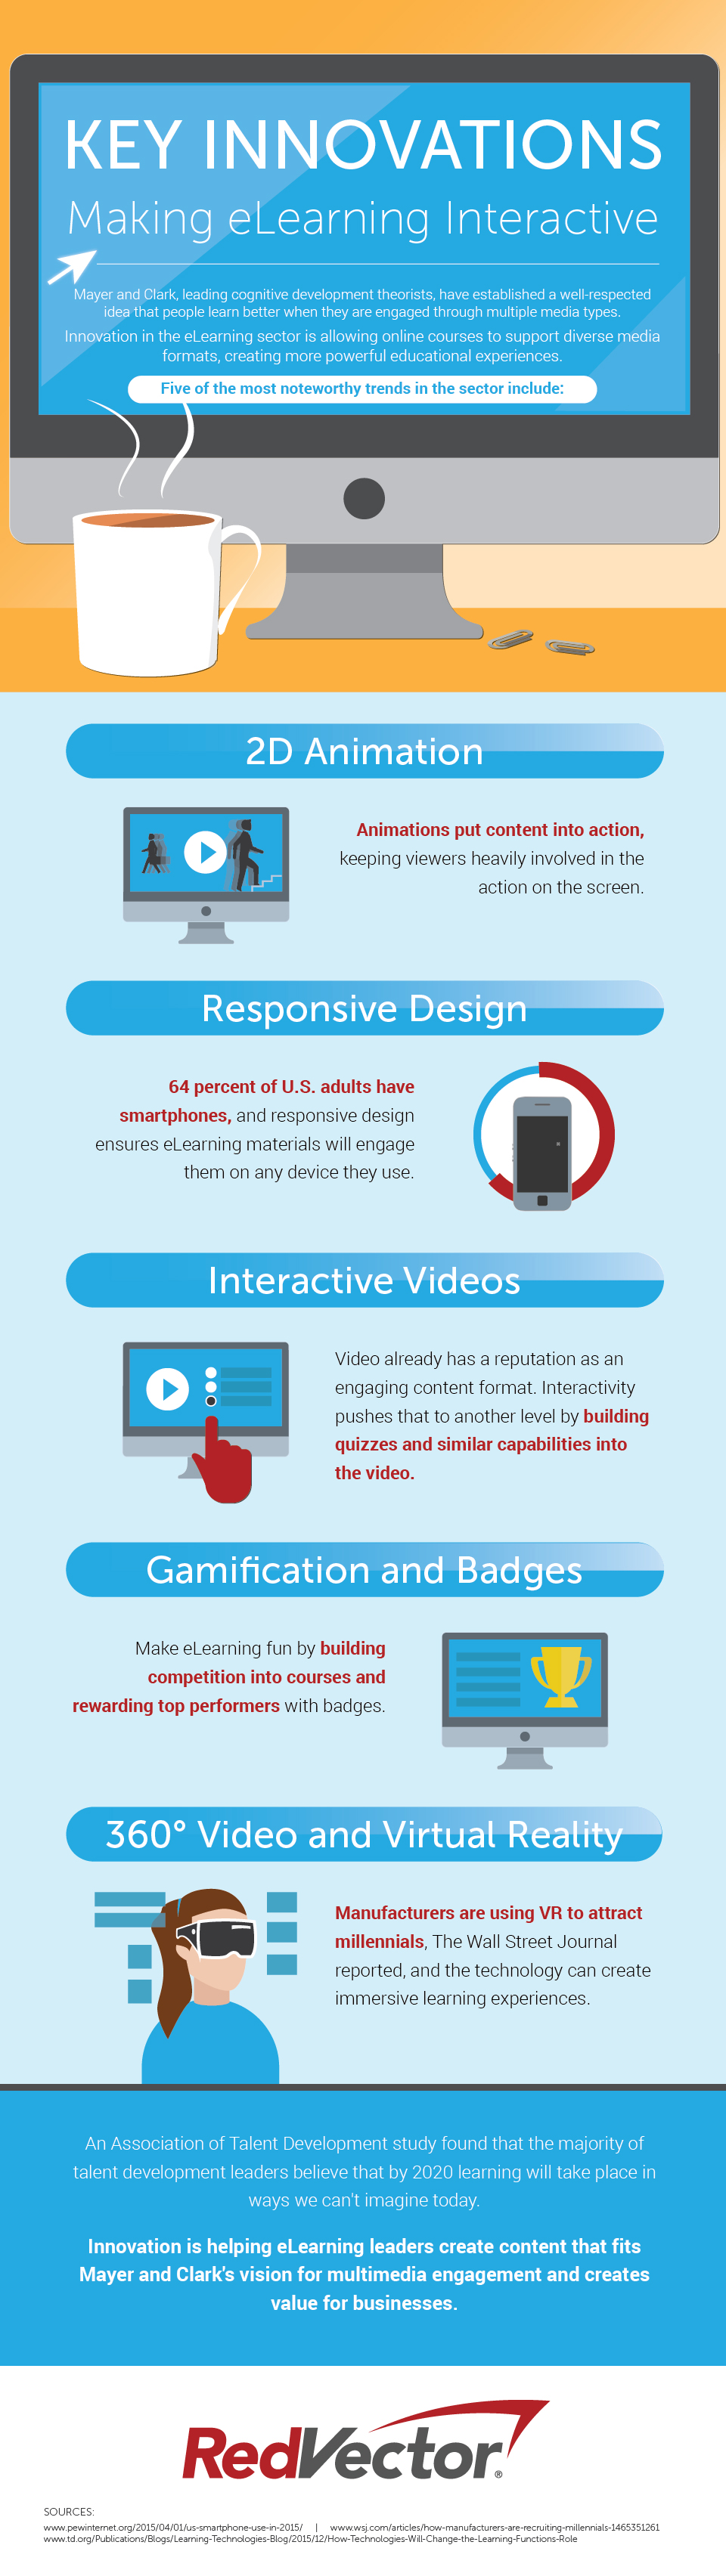 RedVector's eGuide about making eLearning more interactive with gamification.